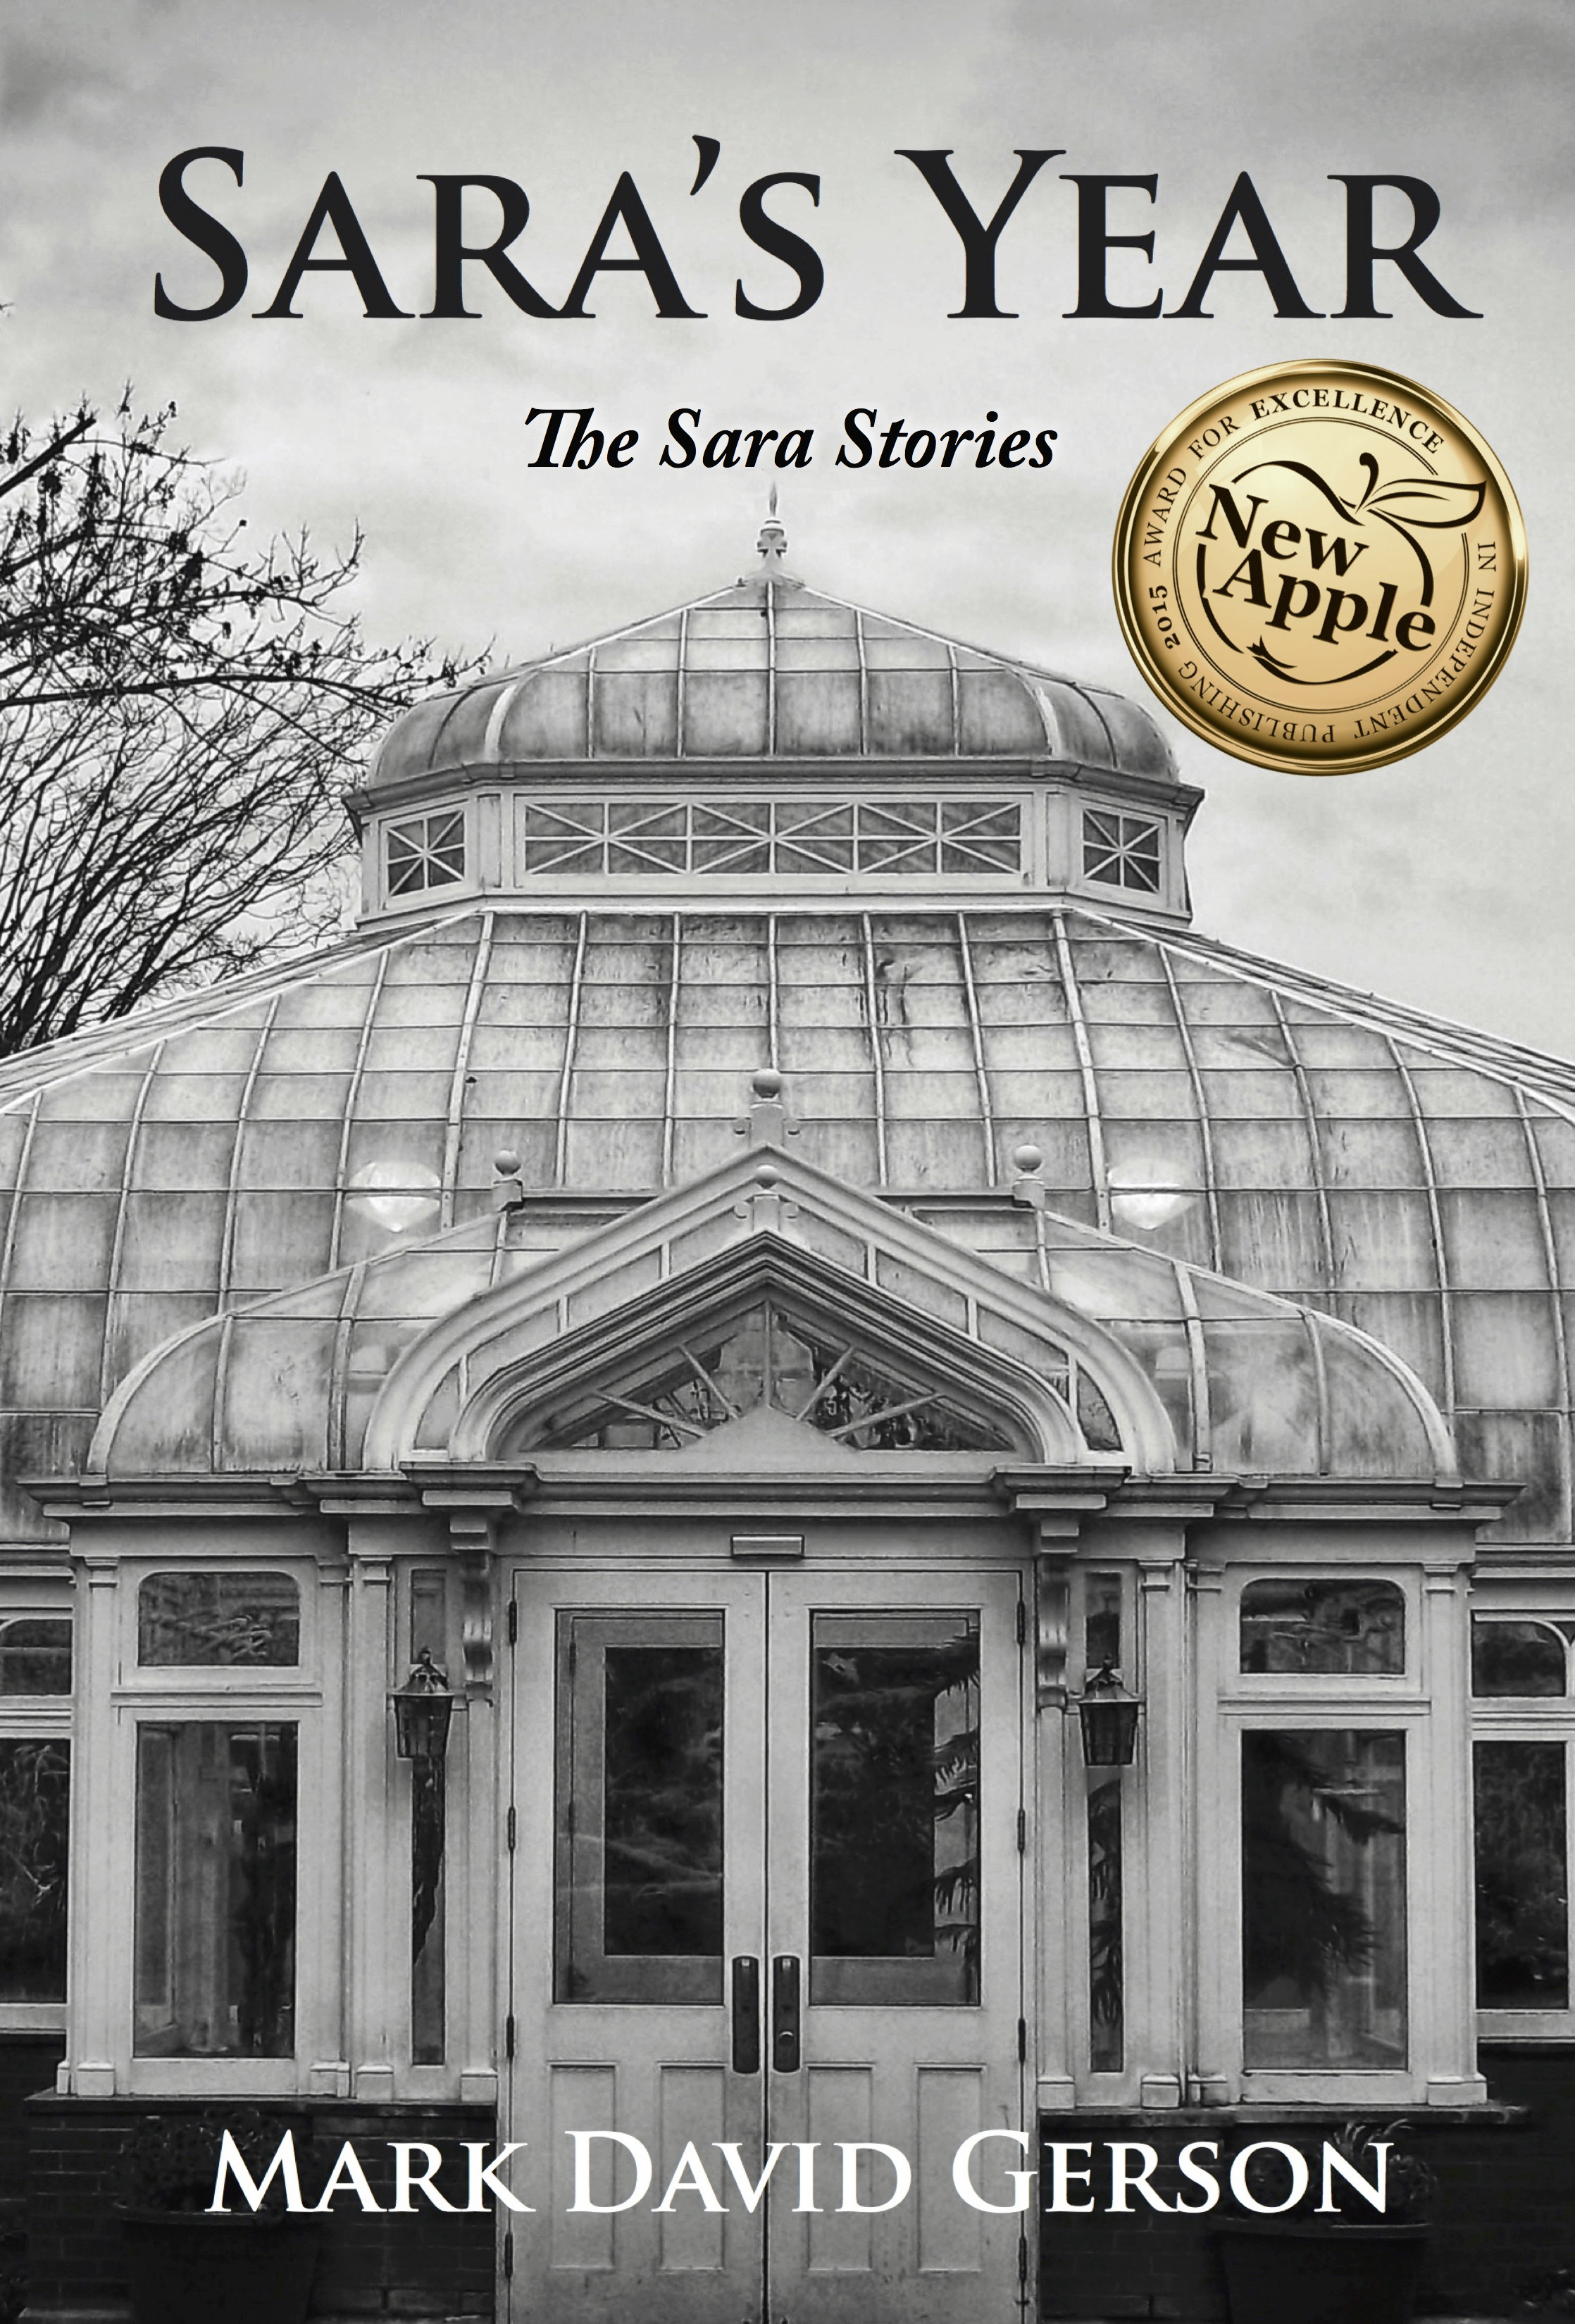 Sara cover with New Apple award top %22sara stories%22 copy.jpg